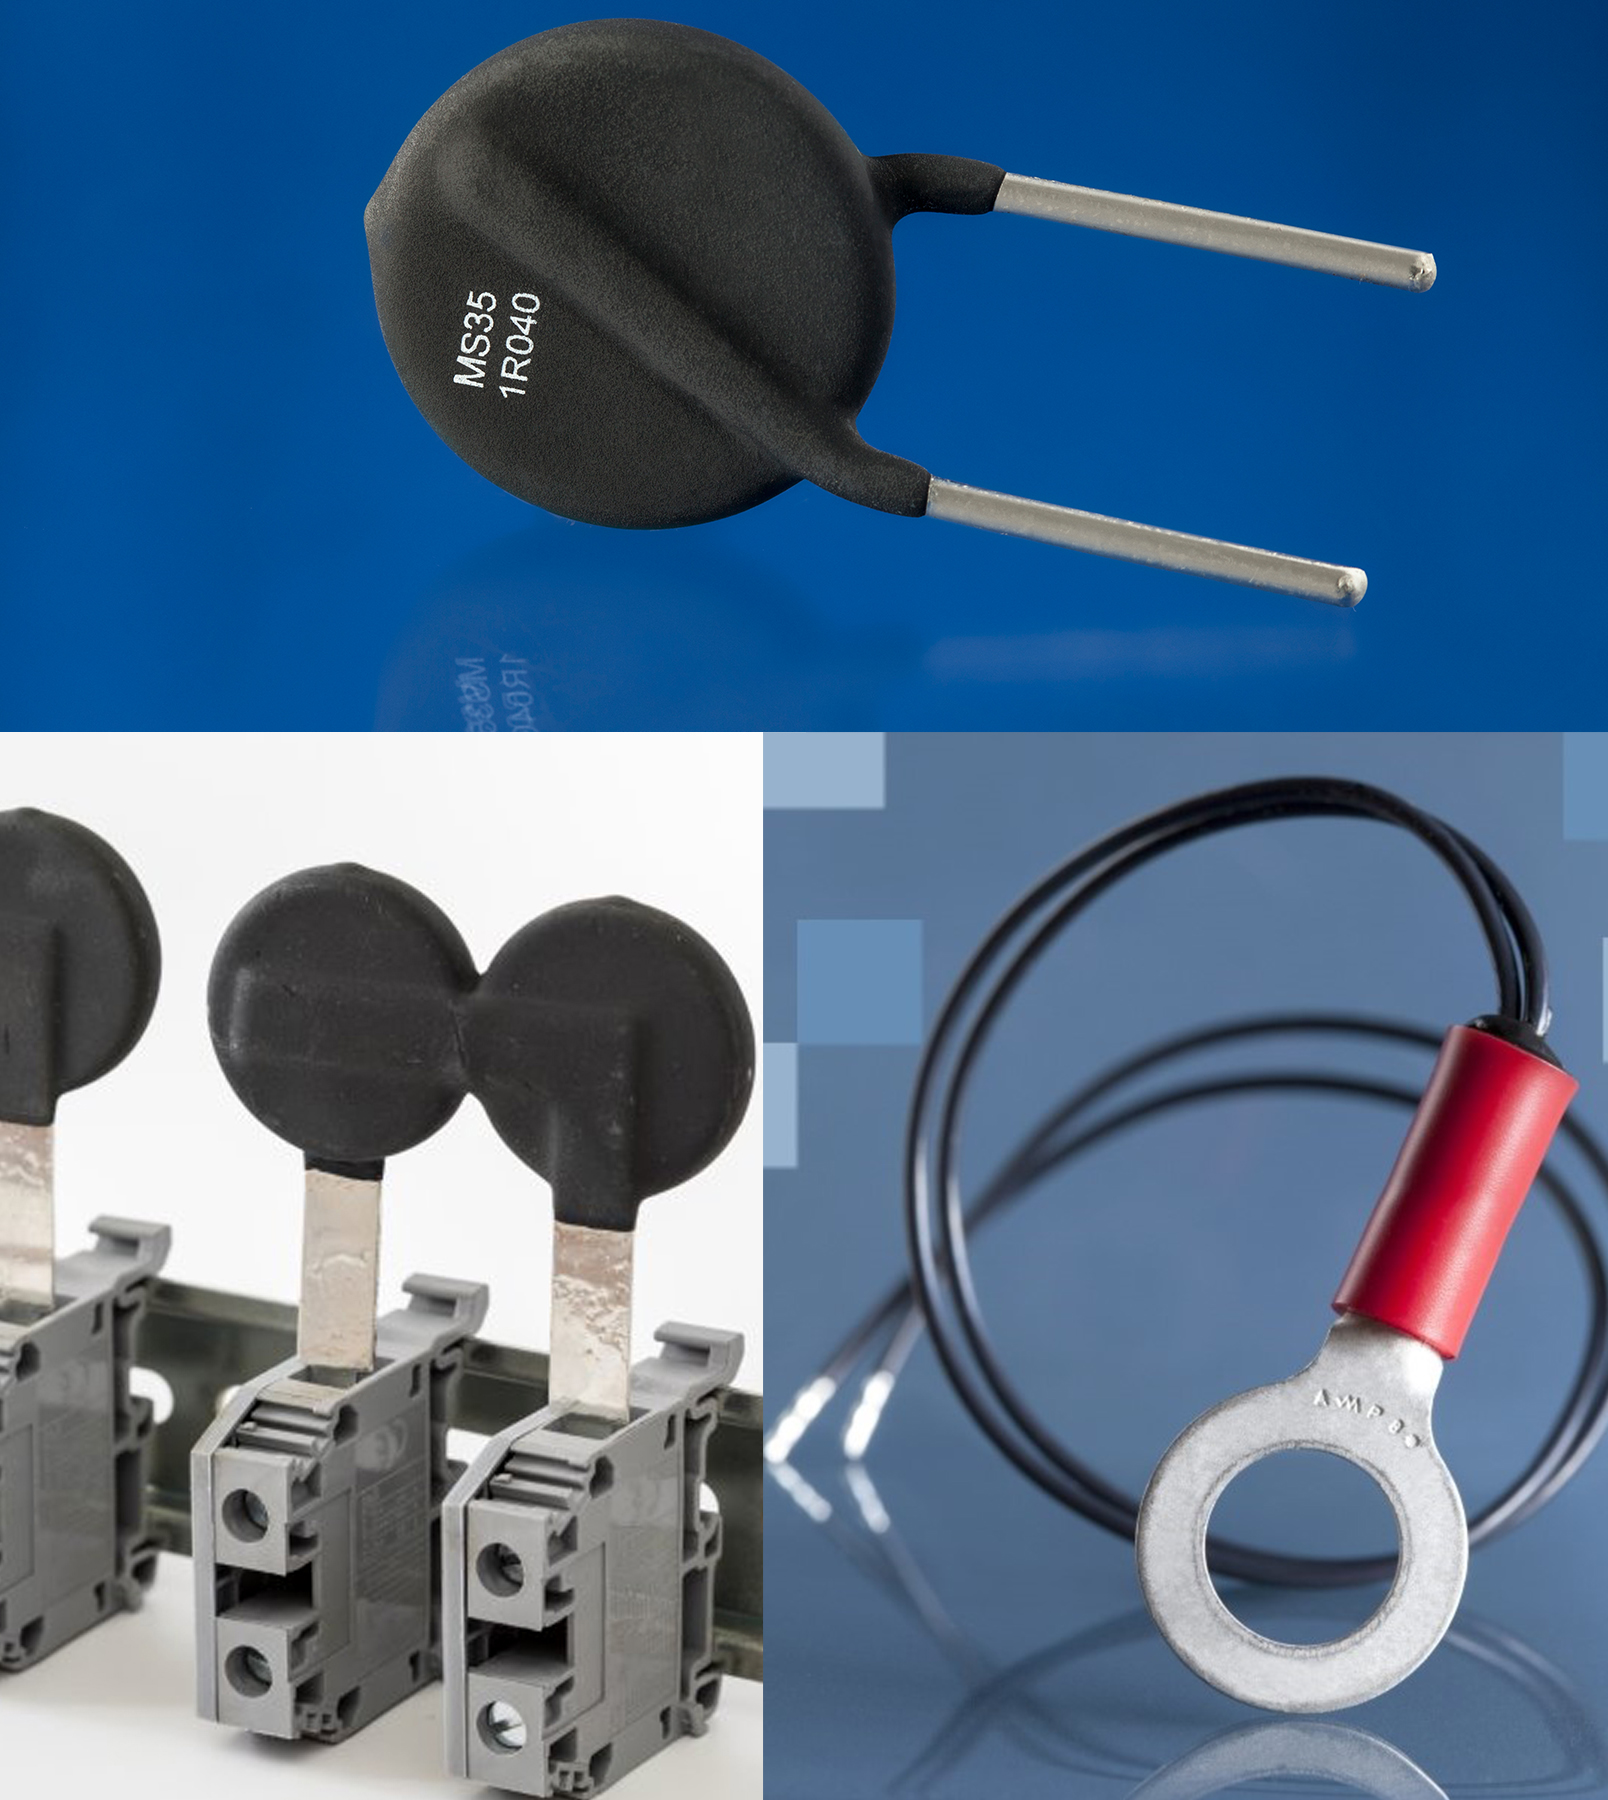 Inrush Current Thermistor Sensing Blog Thermistors Wiring In Parallel Ametherm Announced Its Product Lineup For The Applied Power Electronics Conference And Exposition Apec 2018 Company Will Be Showcasing A Wide Range